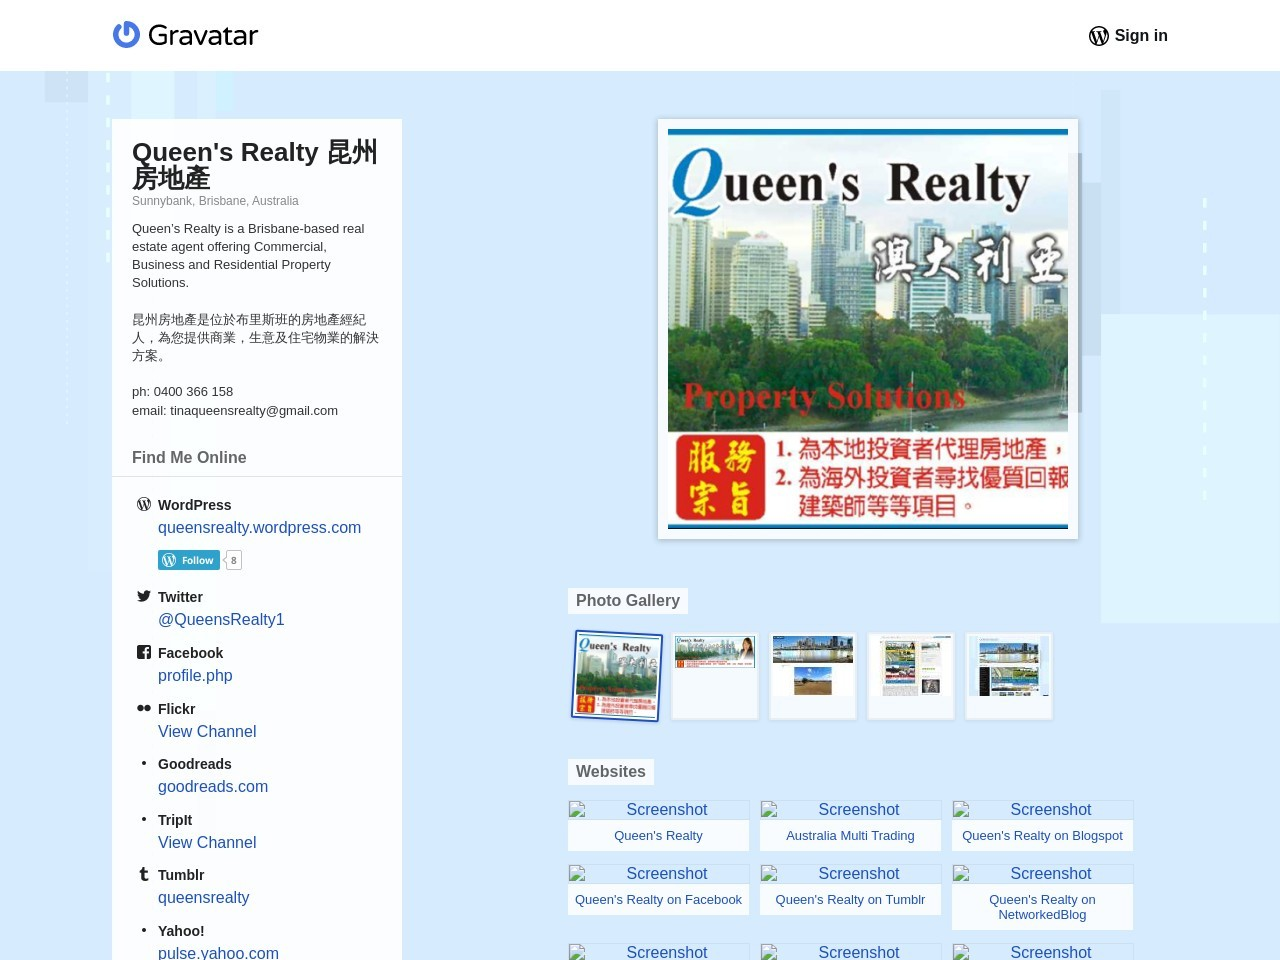 Queen's Realty on Gravatar